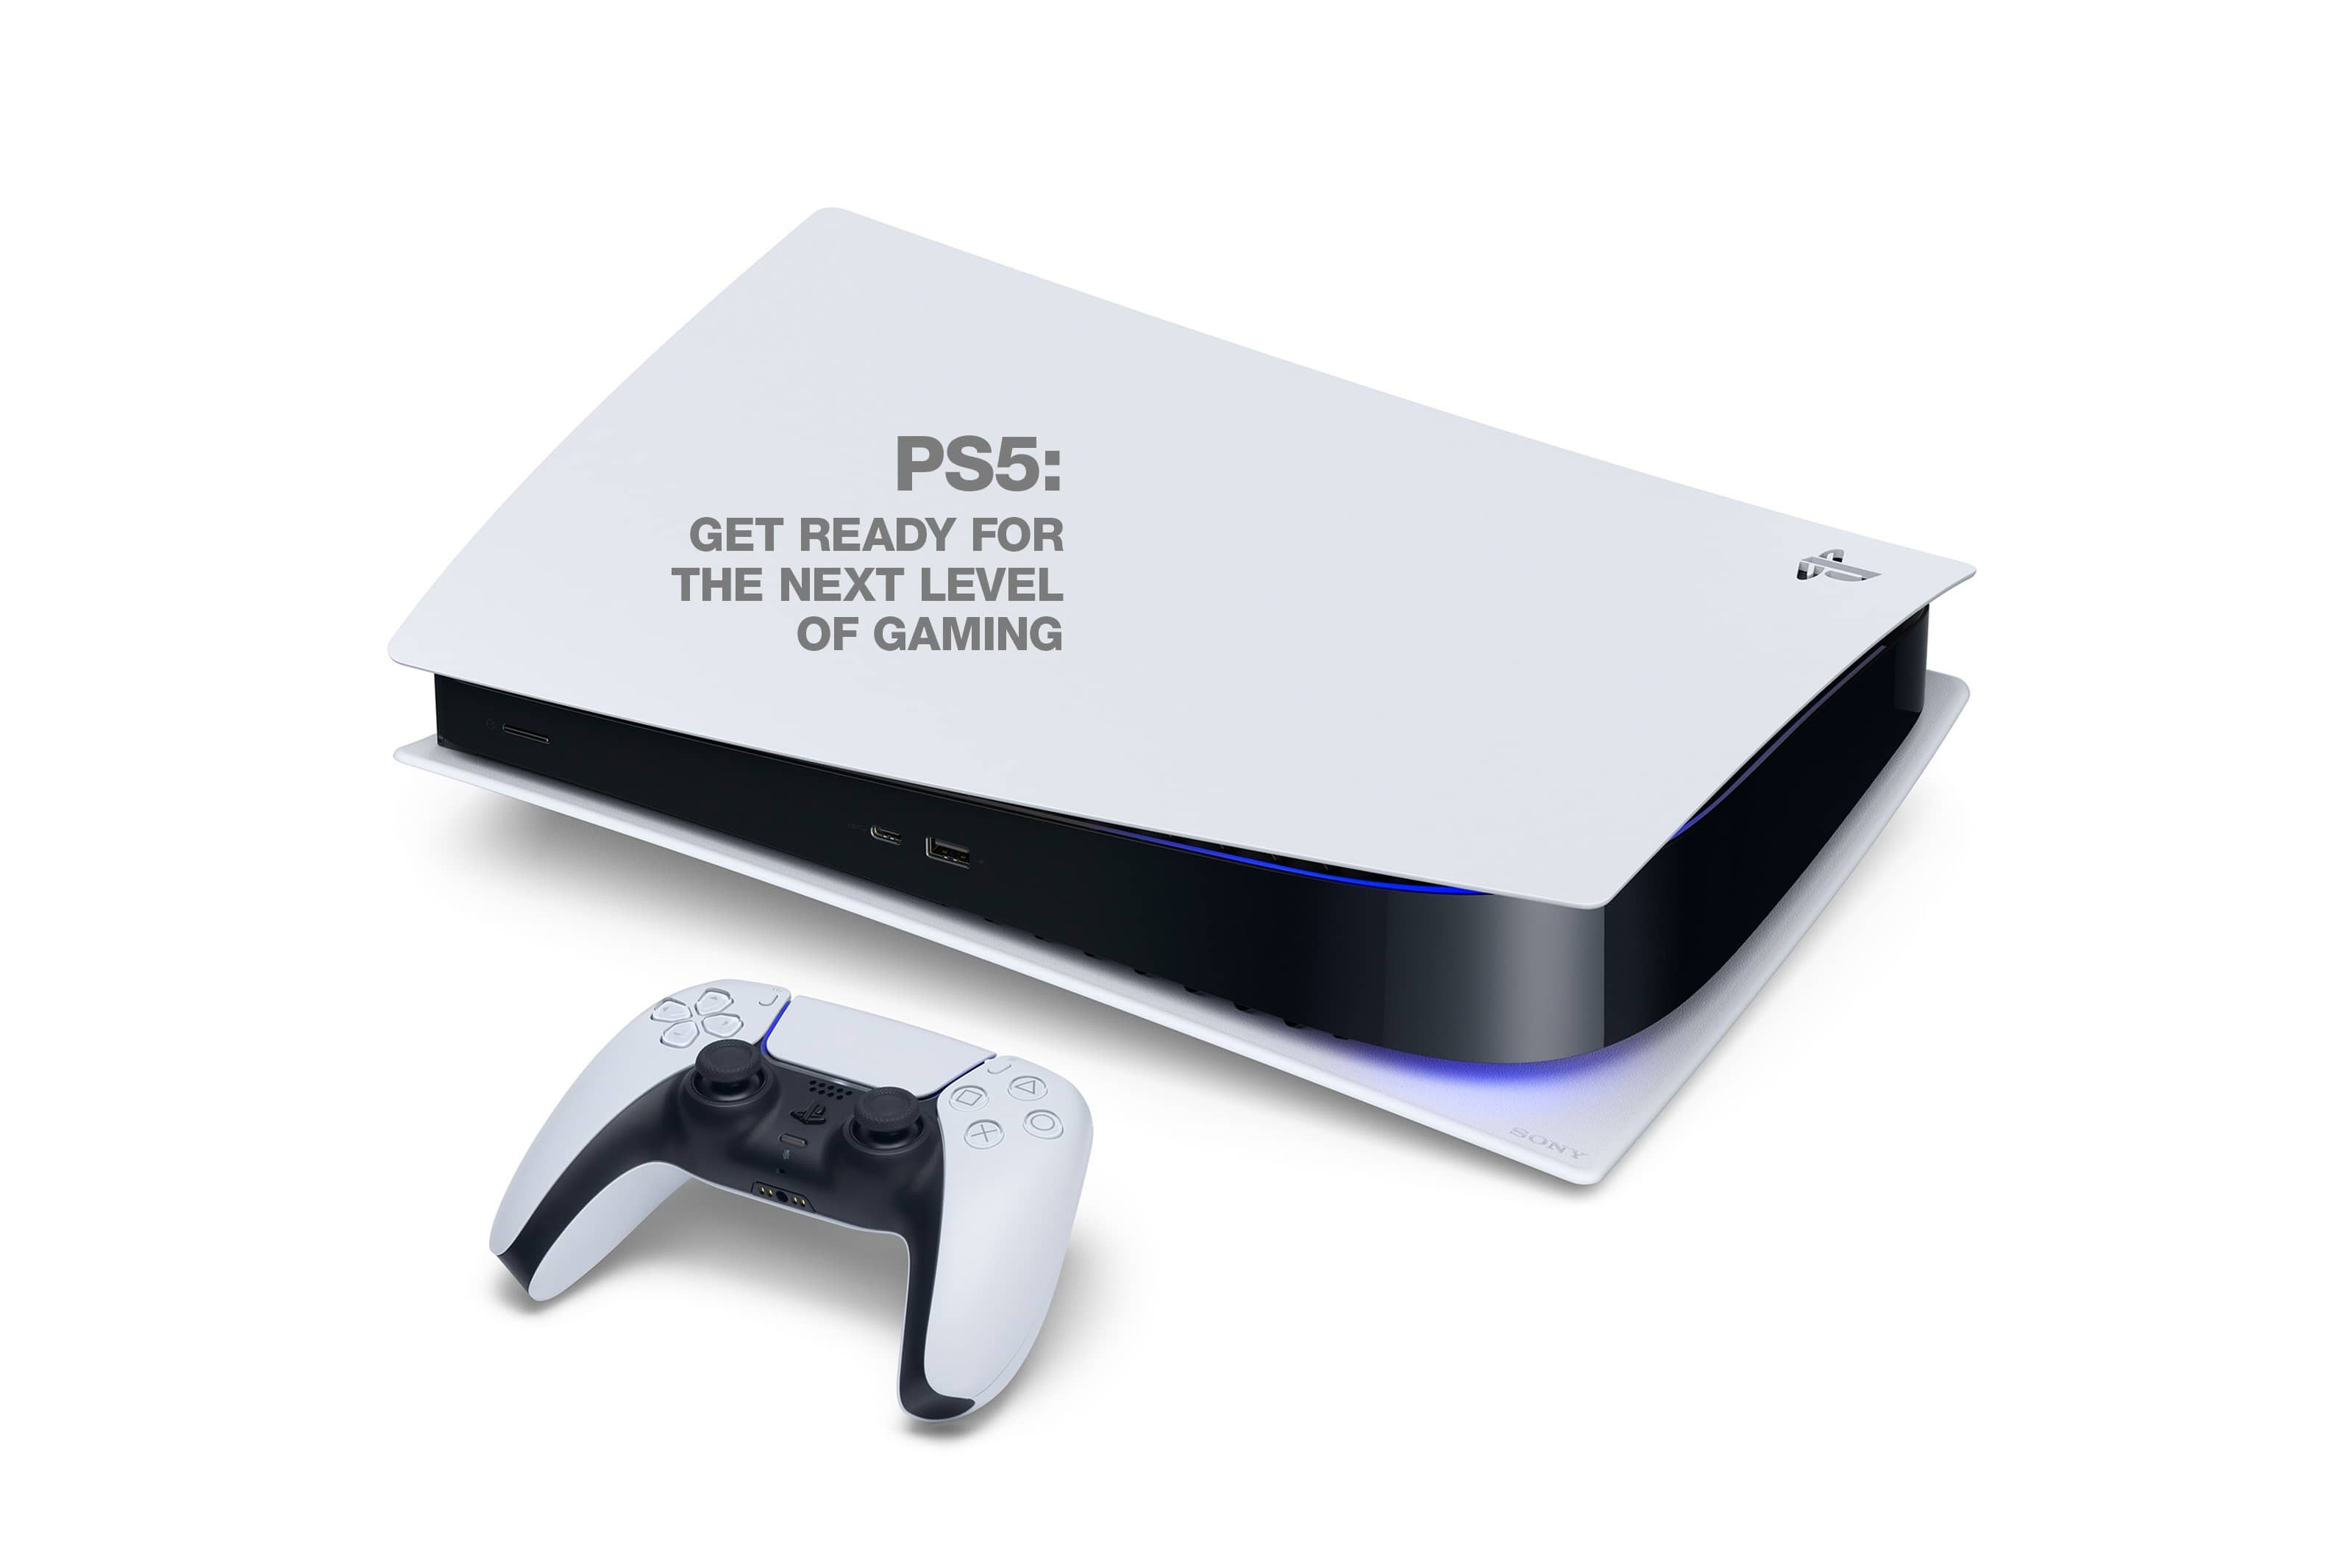 PS5: GET READY FOR THE NEXT LEVEL OF GAMING